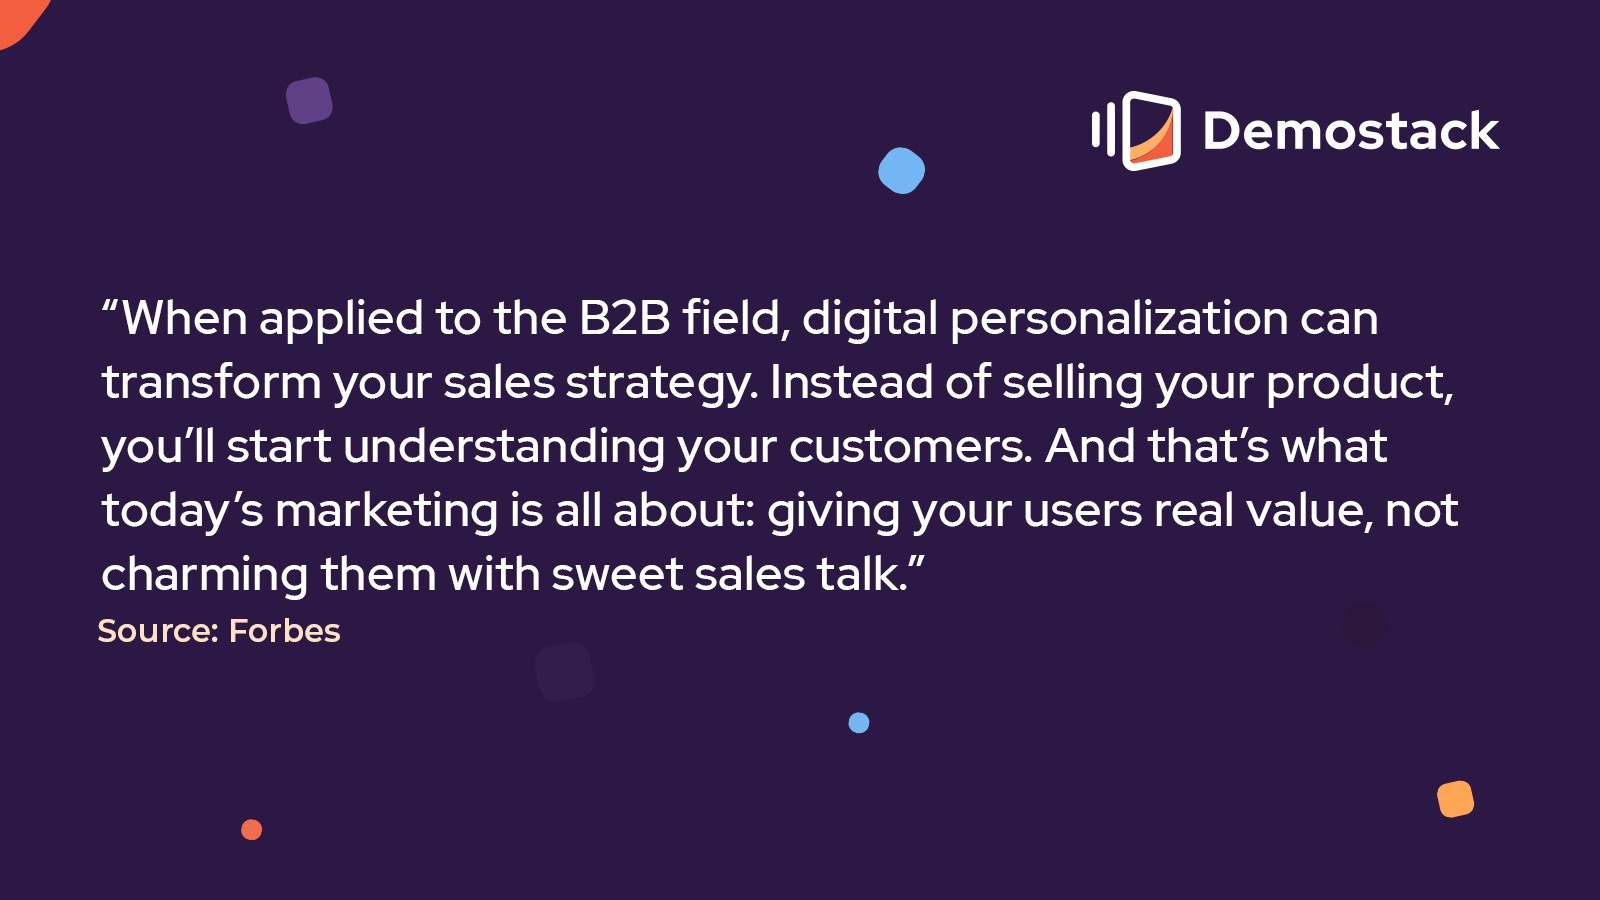 """Per a January 2021 Forbes column, """"When applied to the B2B field, digital personalization can transform your sales strategy. Instead of selling your product, you'll start understanding your customers. And that's what today's marketing is all about: giving your users real value, not charming them with sweet sales talk."""""""